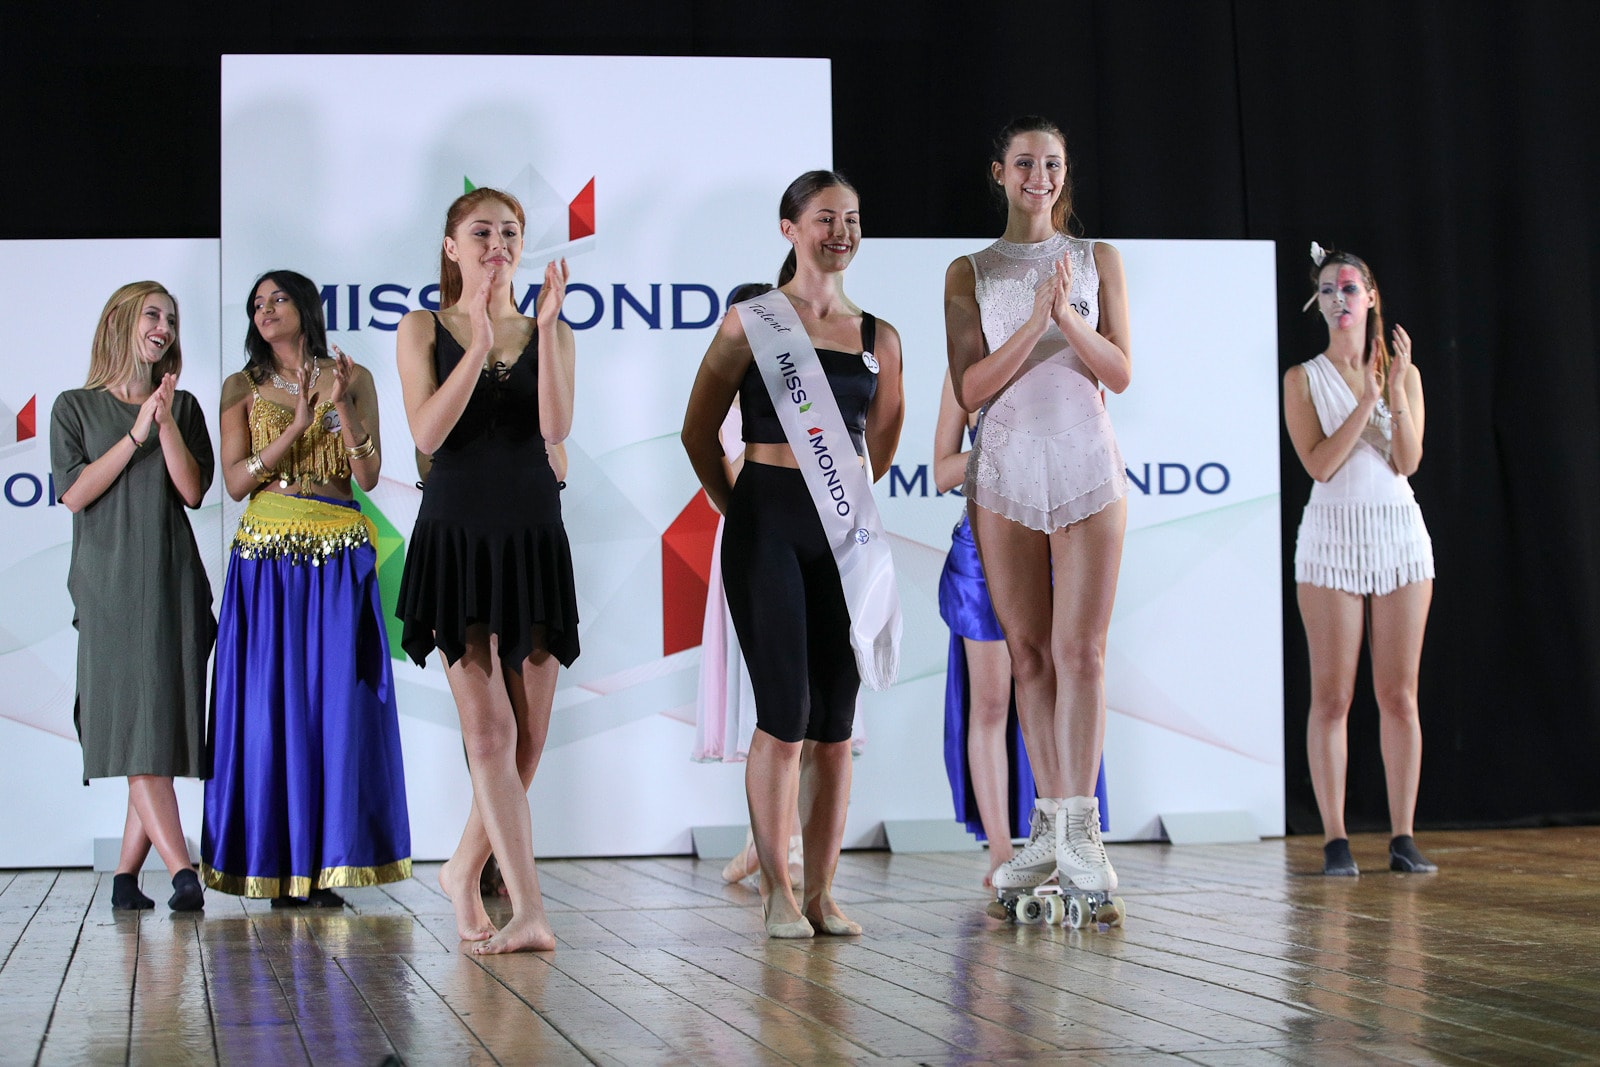 miss mondo talent podio